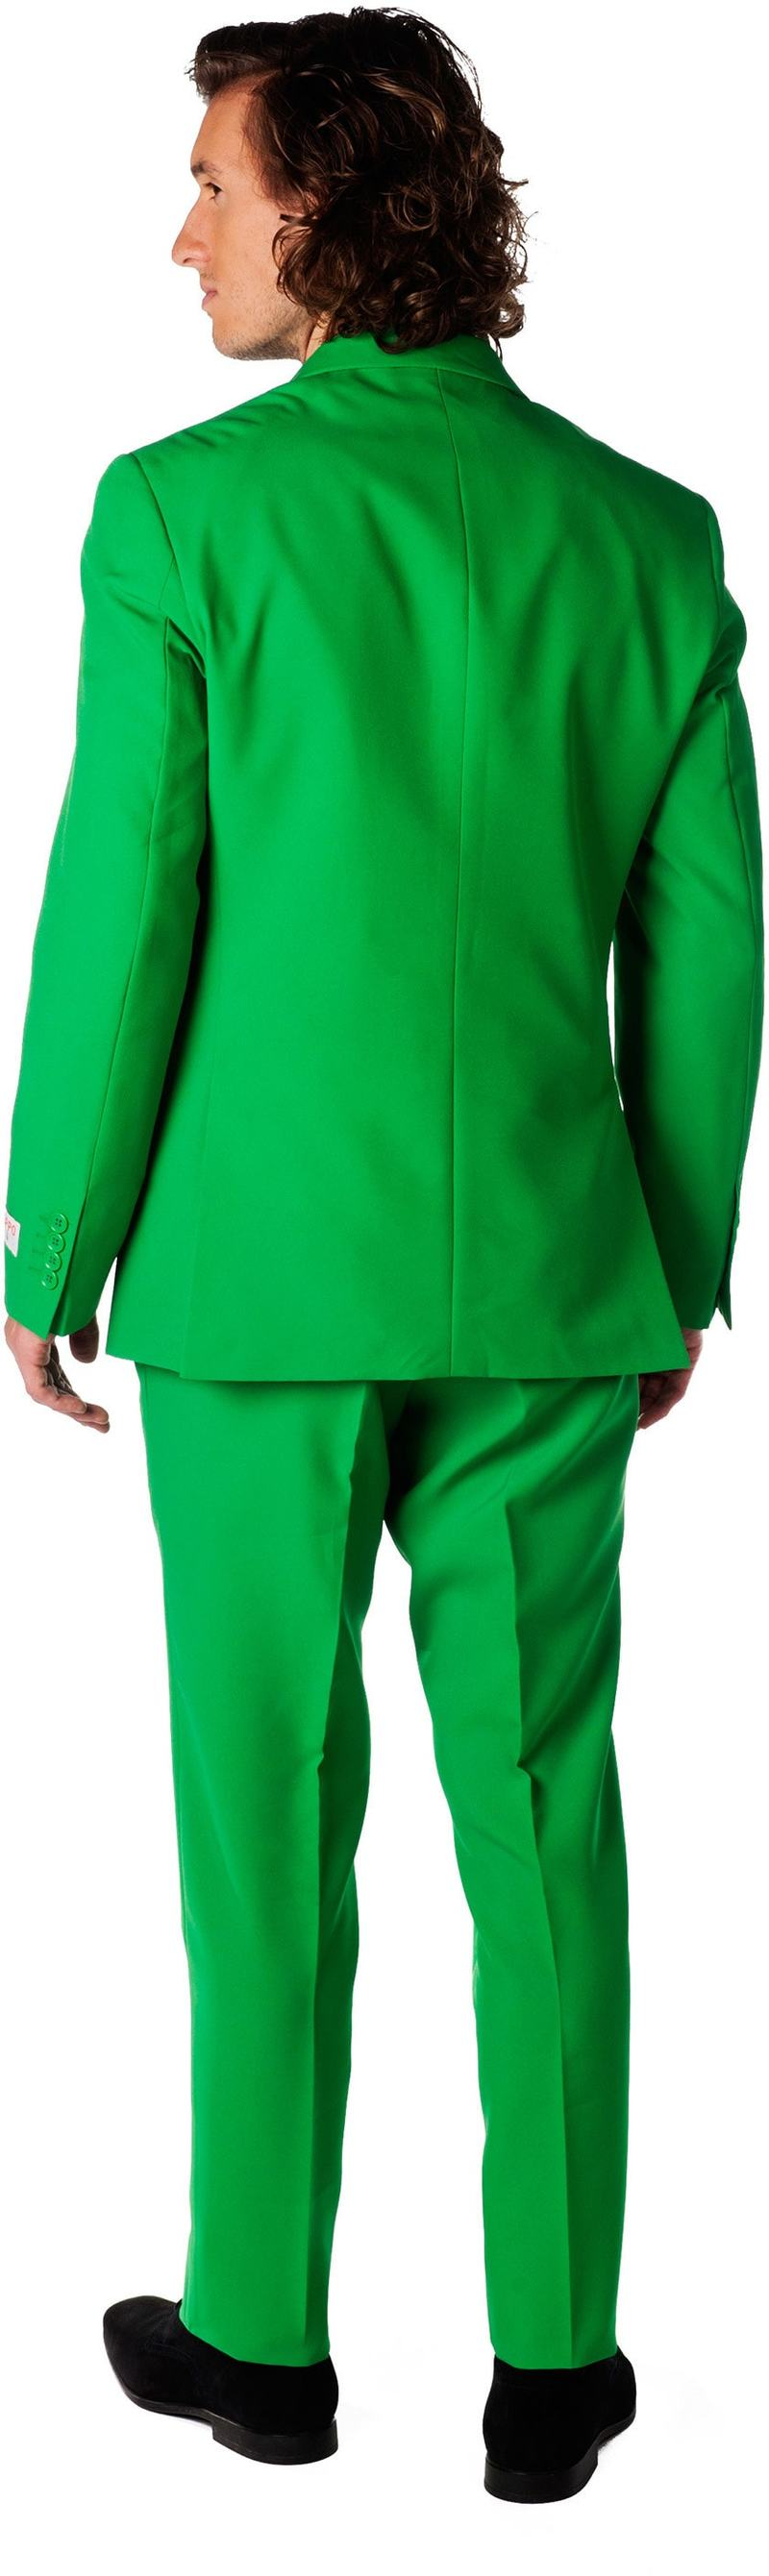 OppoSuits Evergeen Suit photo 1